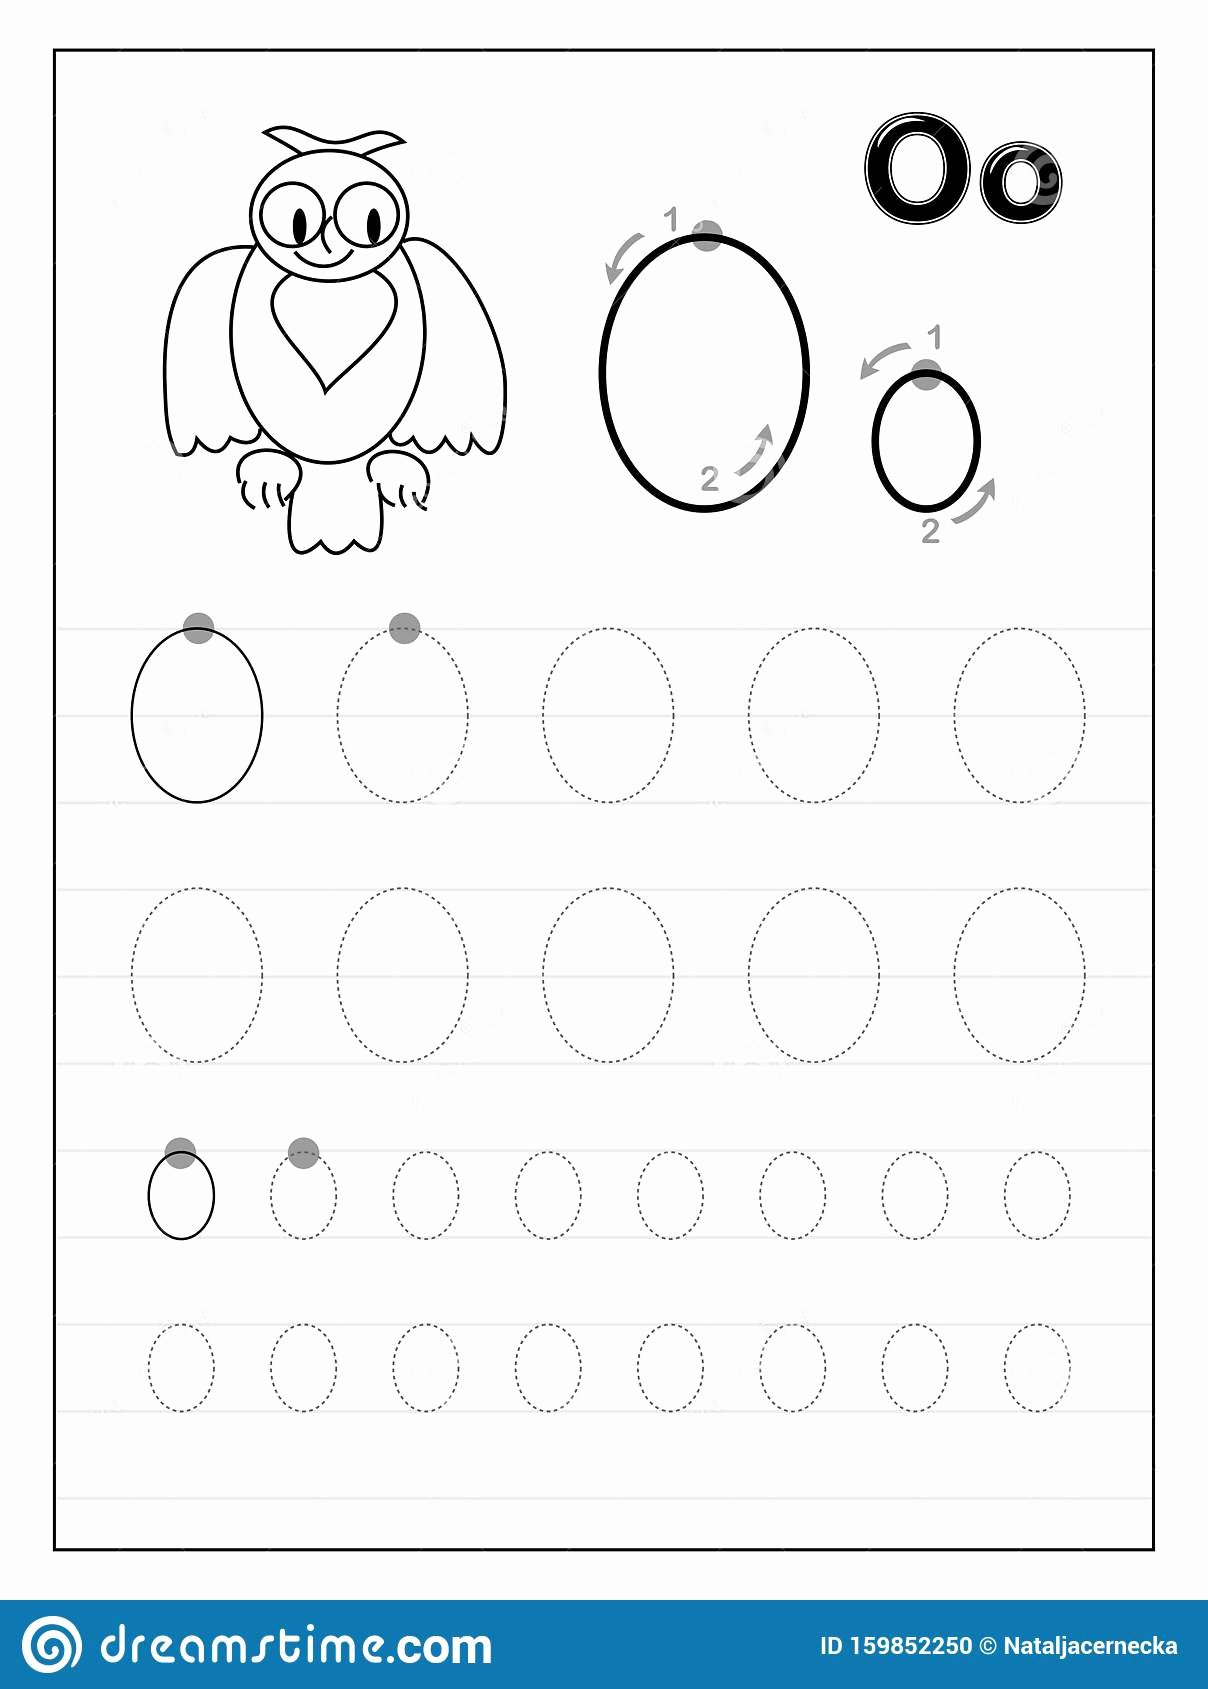 Letter O Worksheets for Preschool Free Tracing Alphabet Letter O Black and White Educational Pages